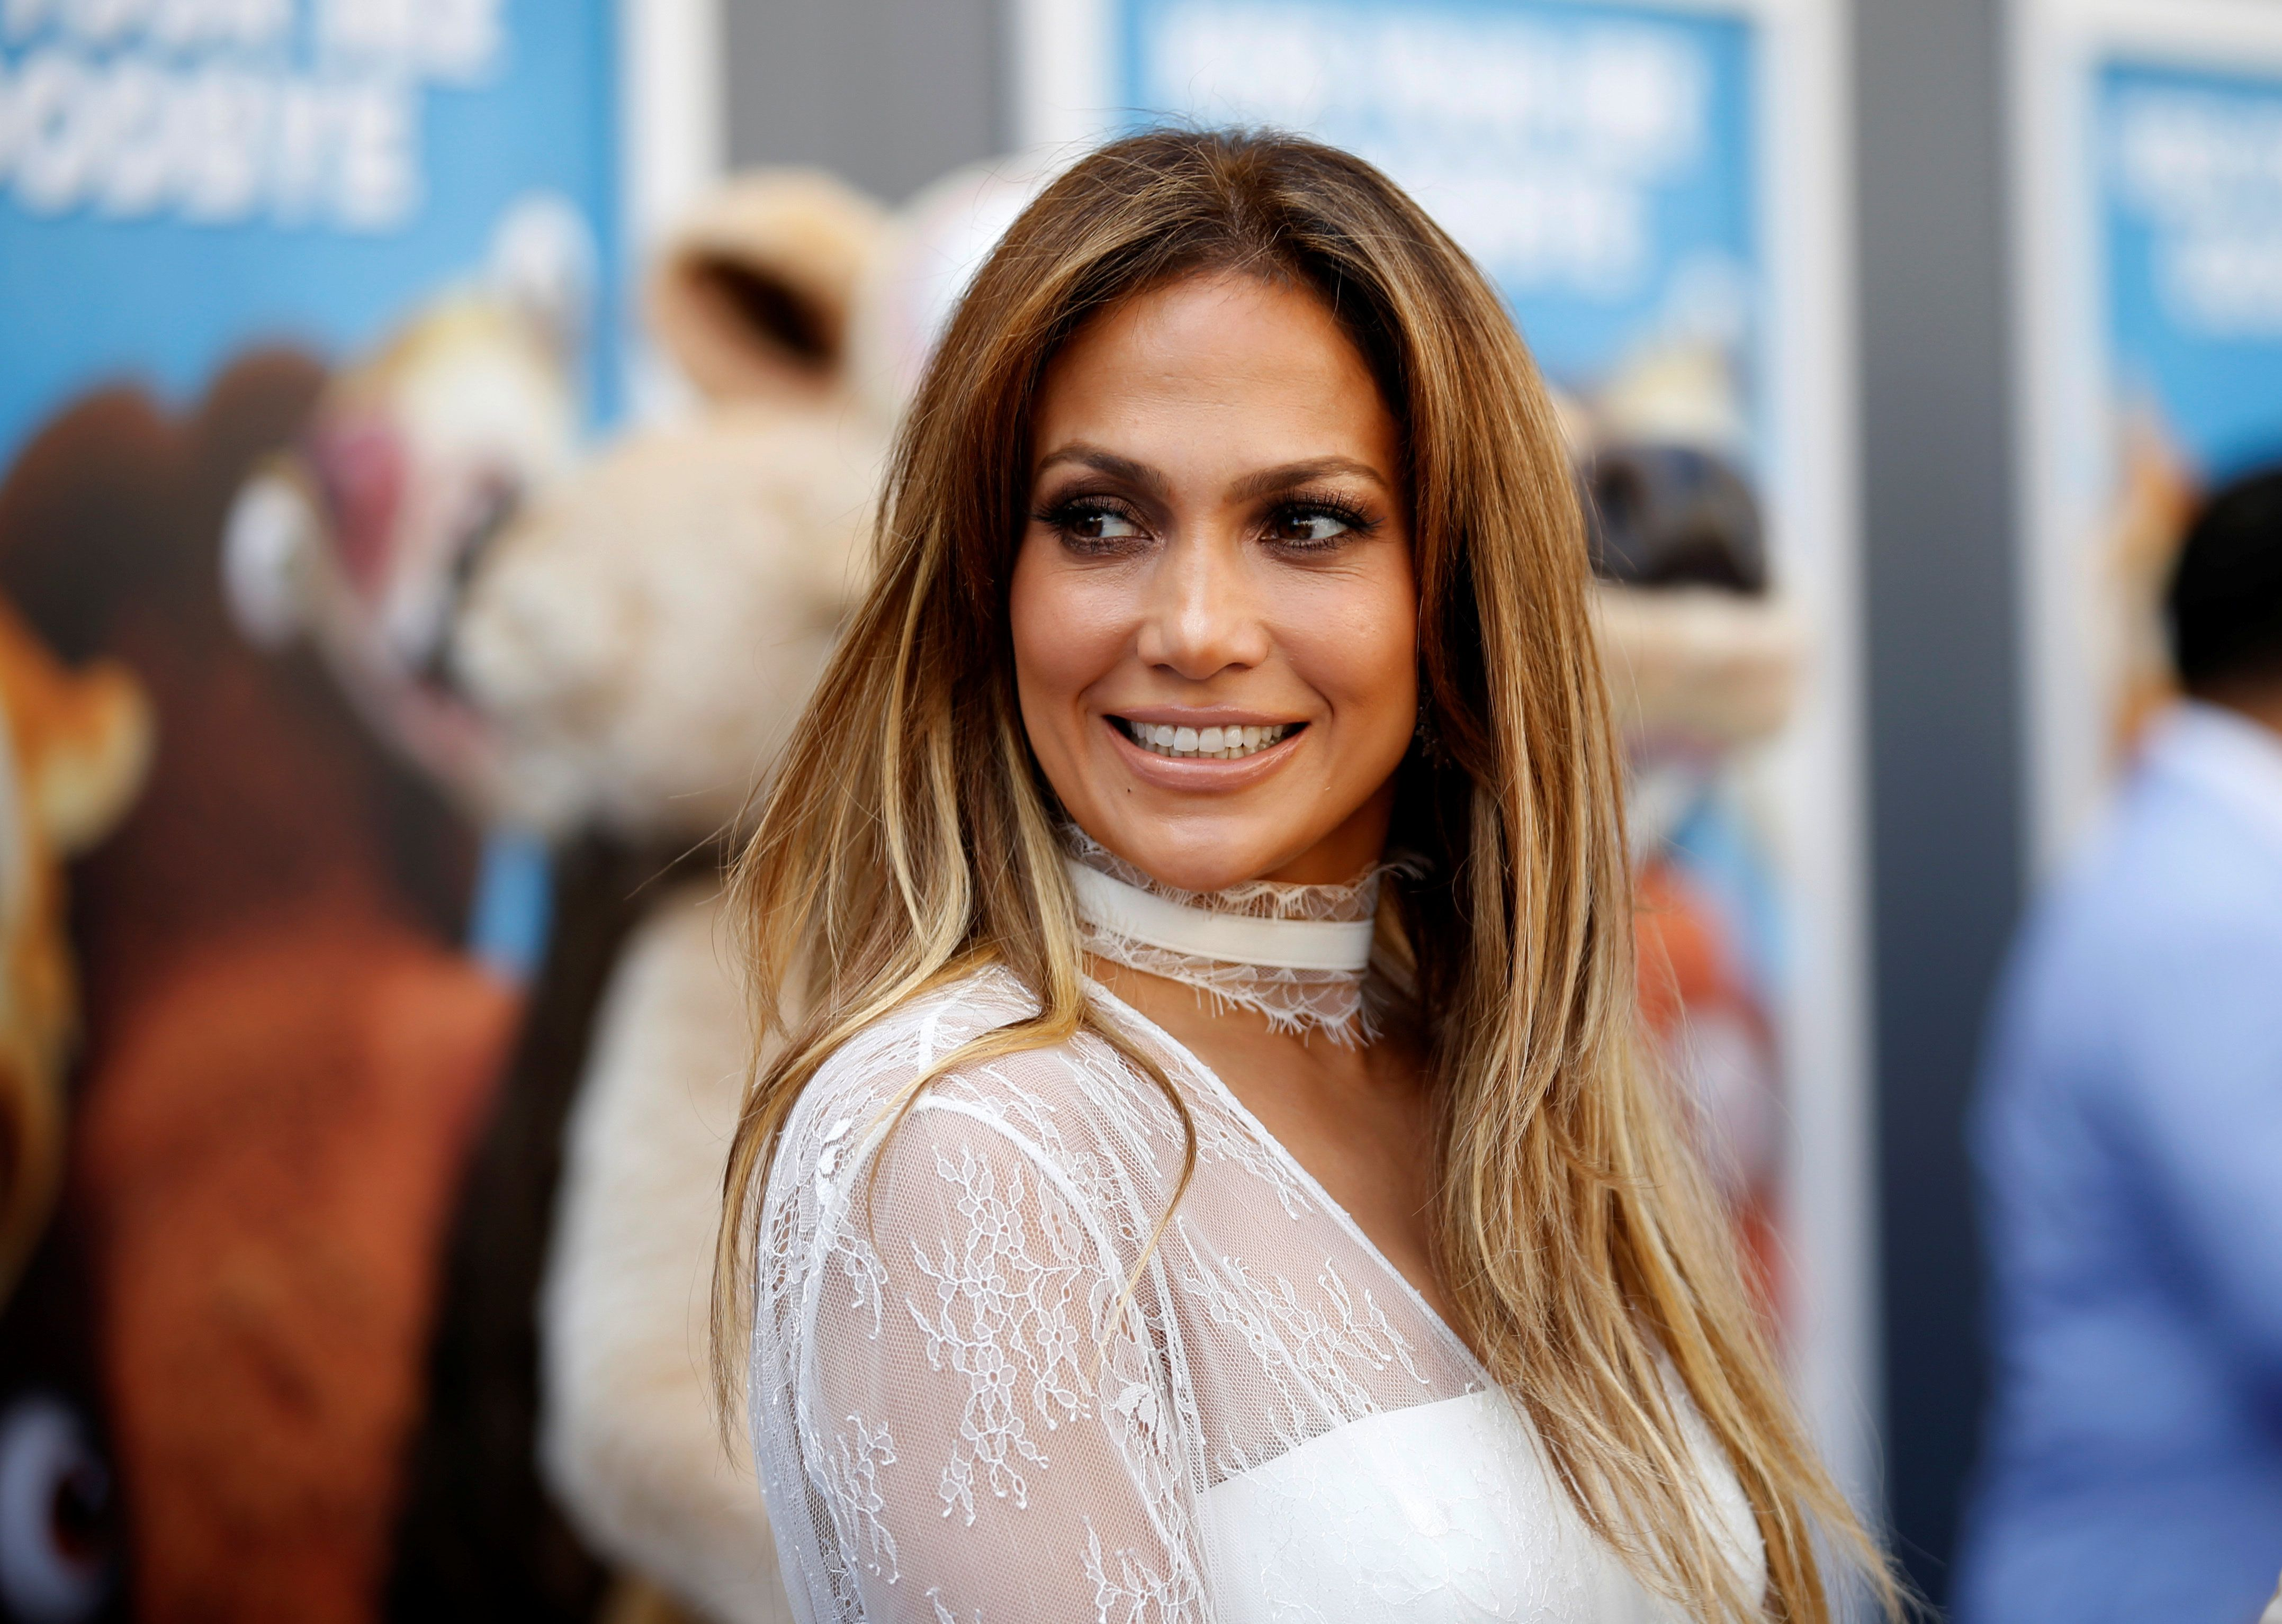 Brava! Jennifer Lopez Respects Gender Neutrality With One Simple Pronoun